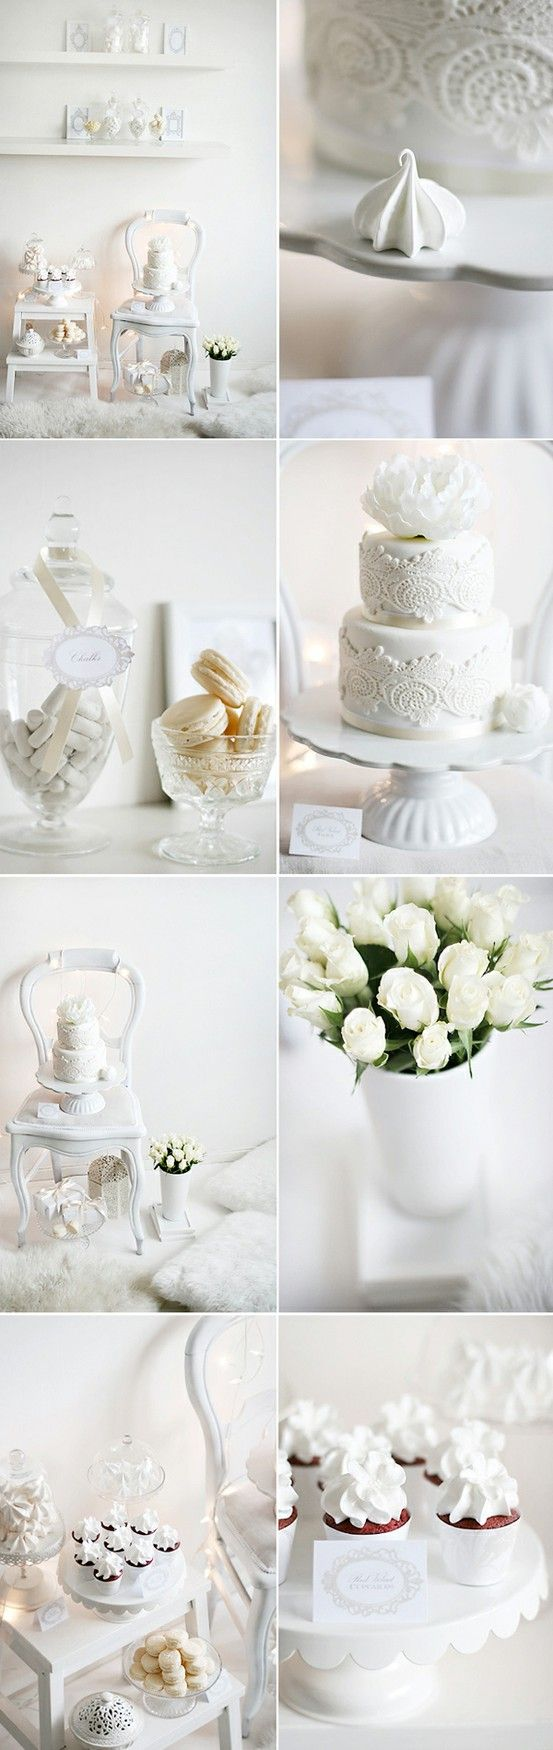 LOVE the LACE texture on this wedding cake!